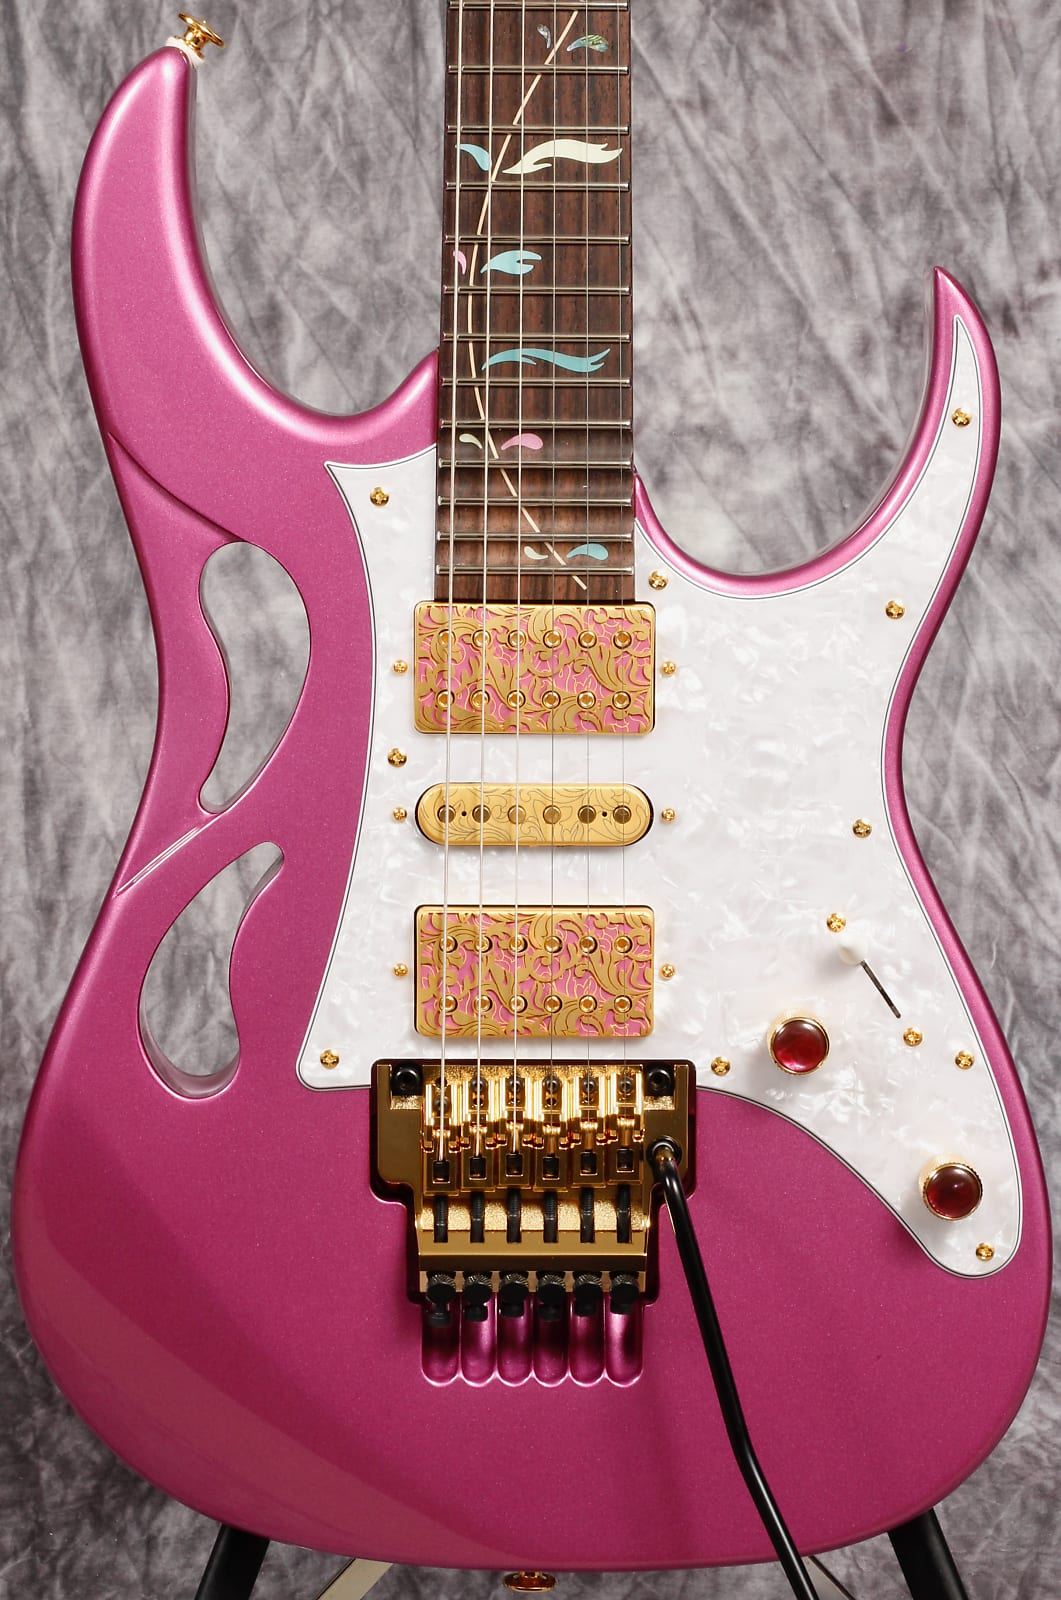 Ibanez Steve Vai Signature PIA PIA3761 - In Stock and Ready To Ship